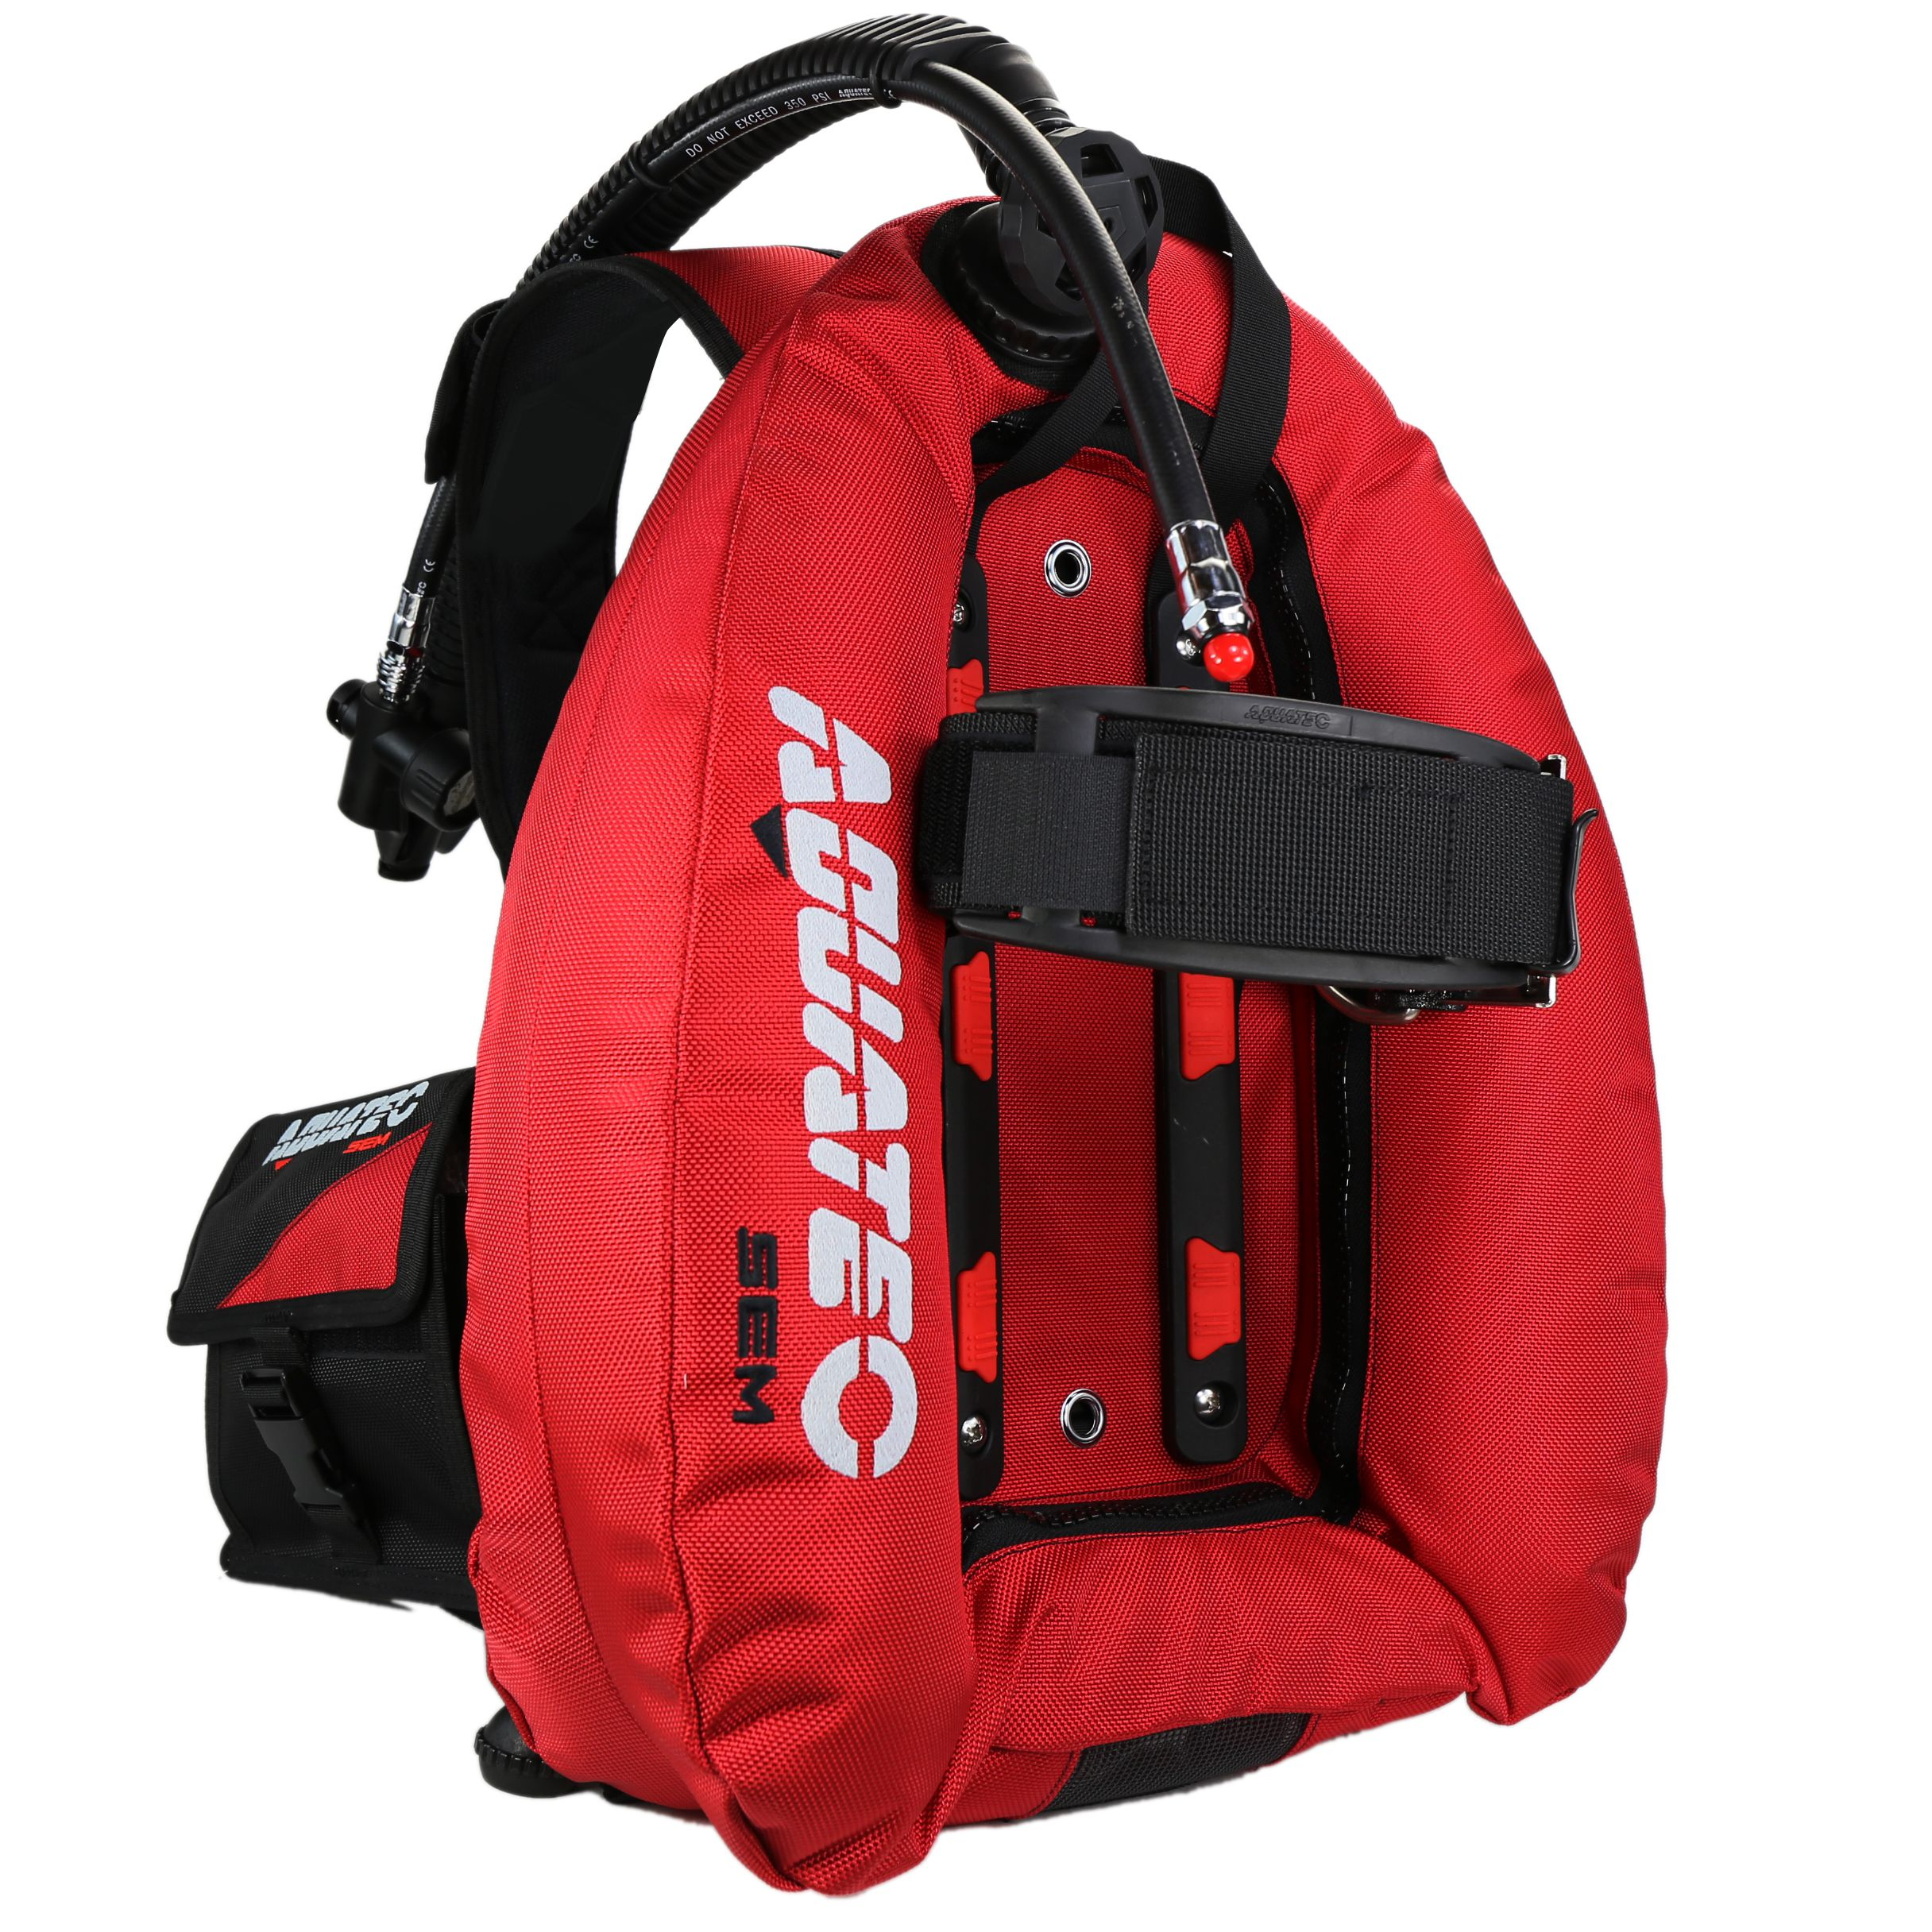 Performance Harness sayap mono dount - Performan sayap dount